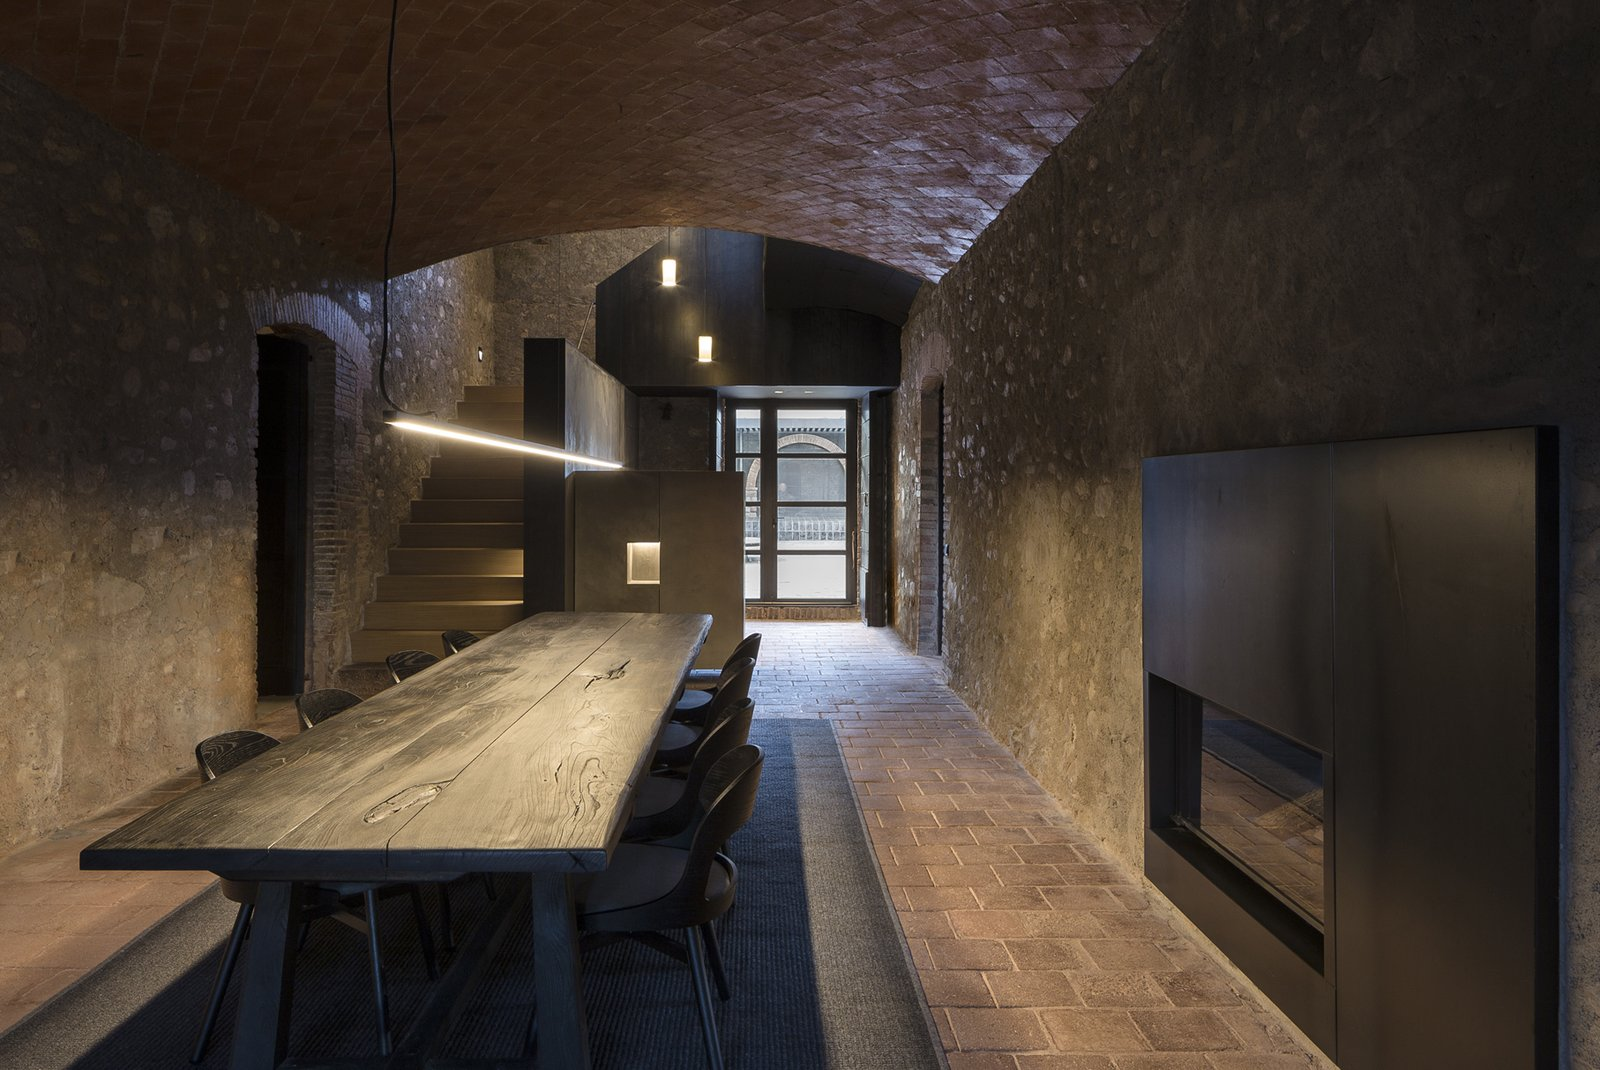 Dining Room, Lamps, Table, Two-Sided Fireplace, Ceramic Tile Floor, and Pendant Lighting  Sant Martí House by Francesc Rifé Studio